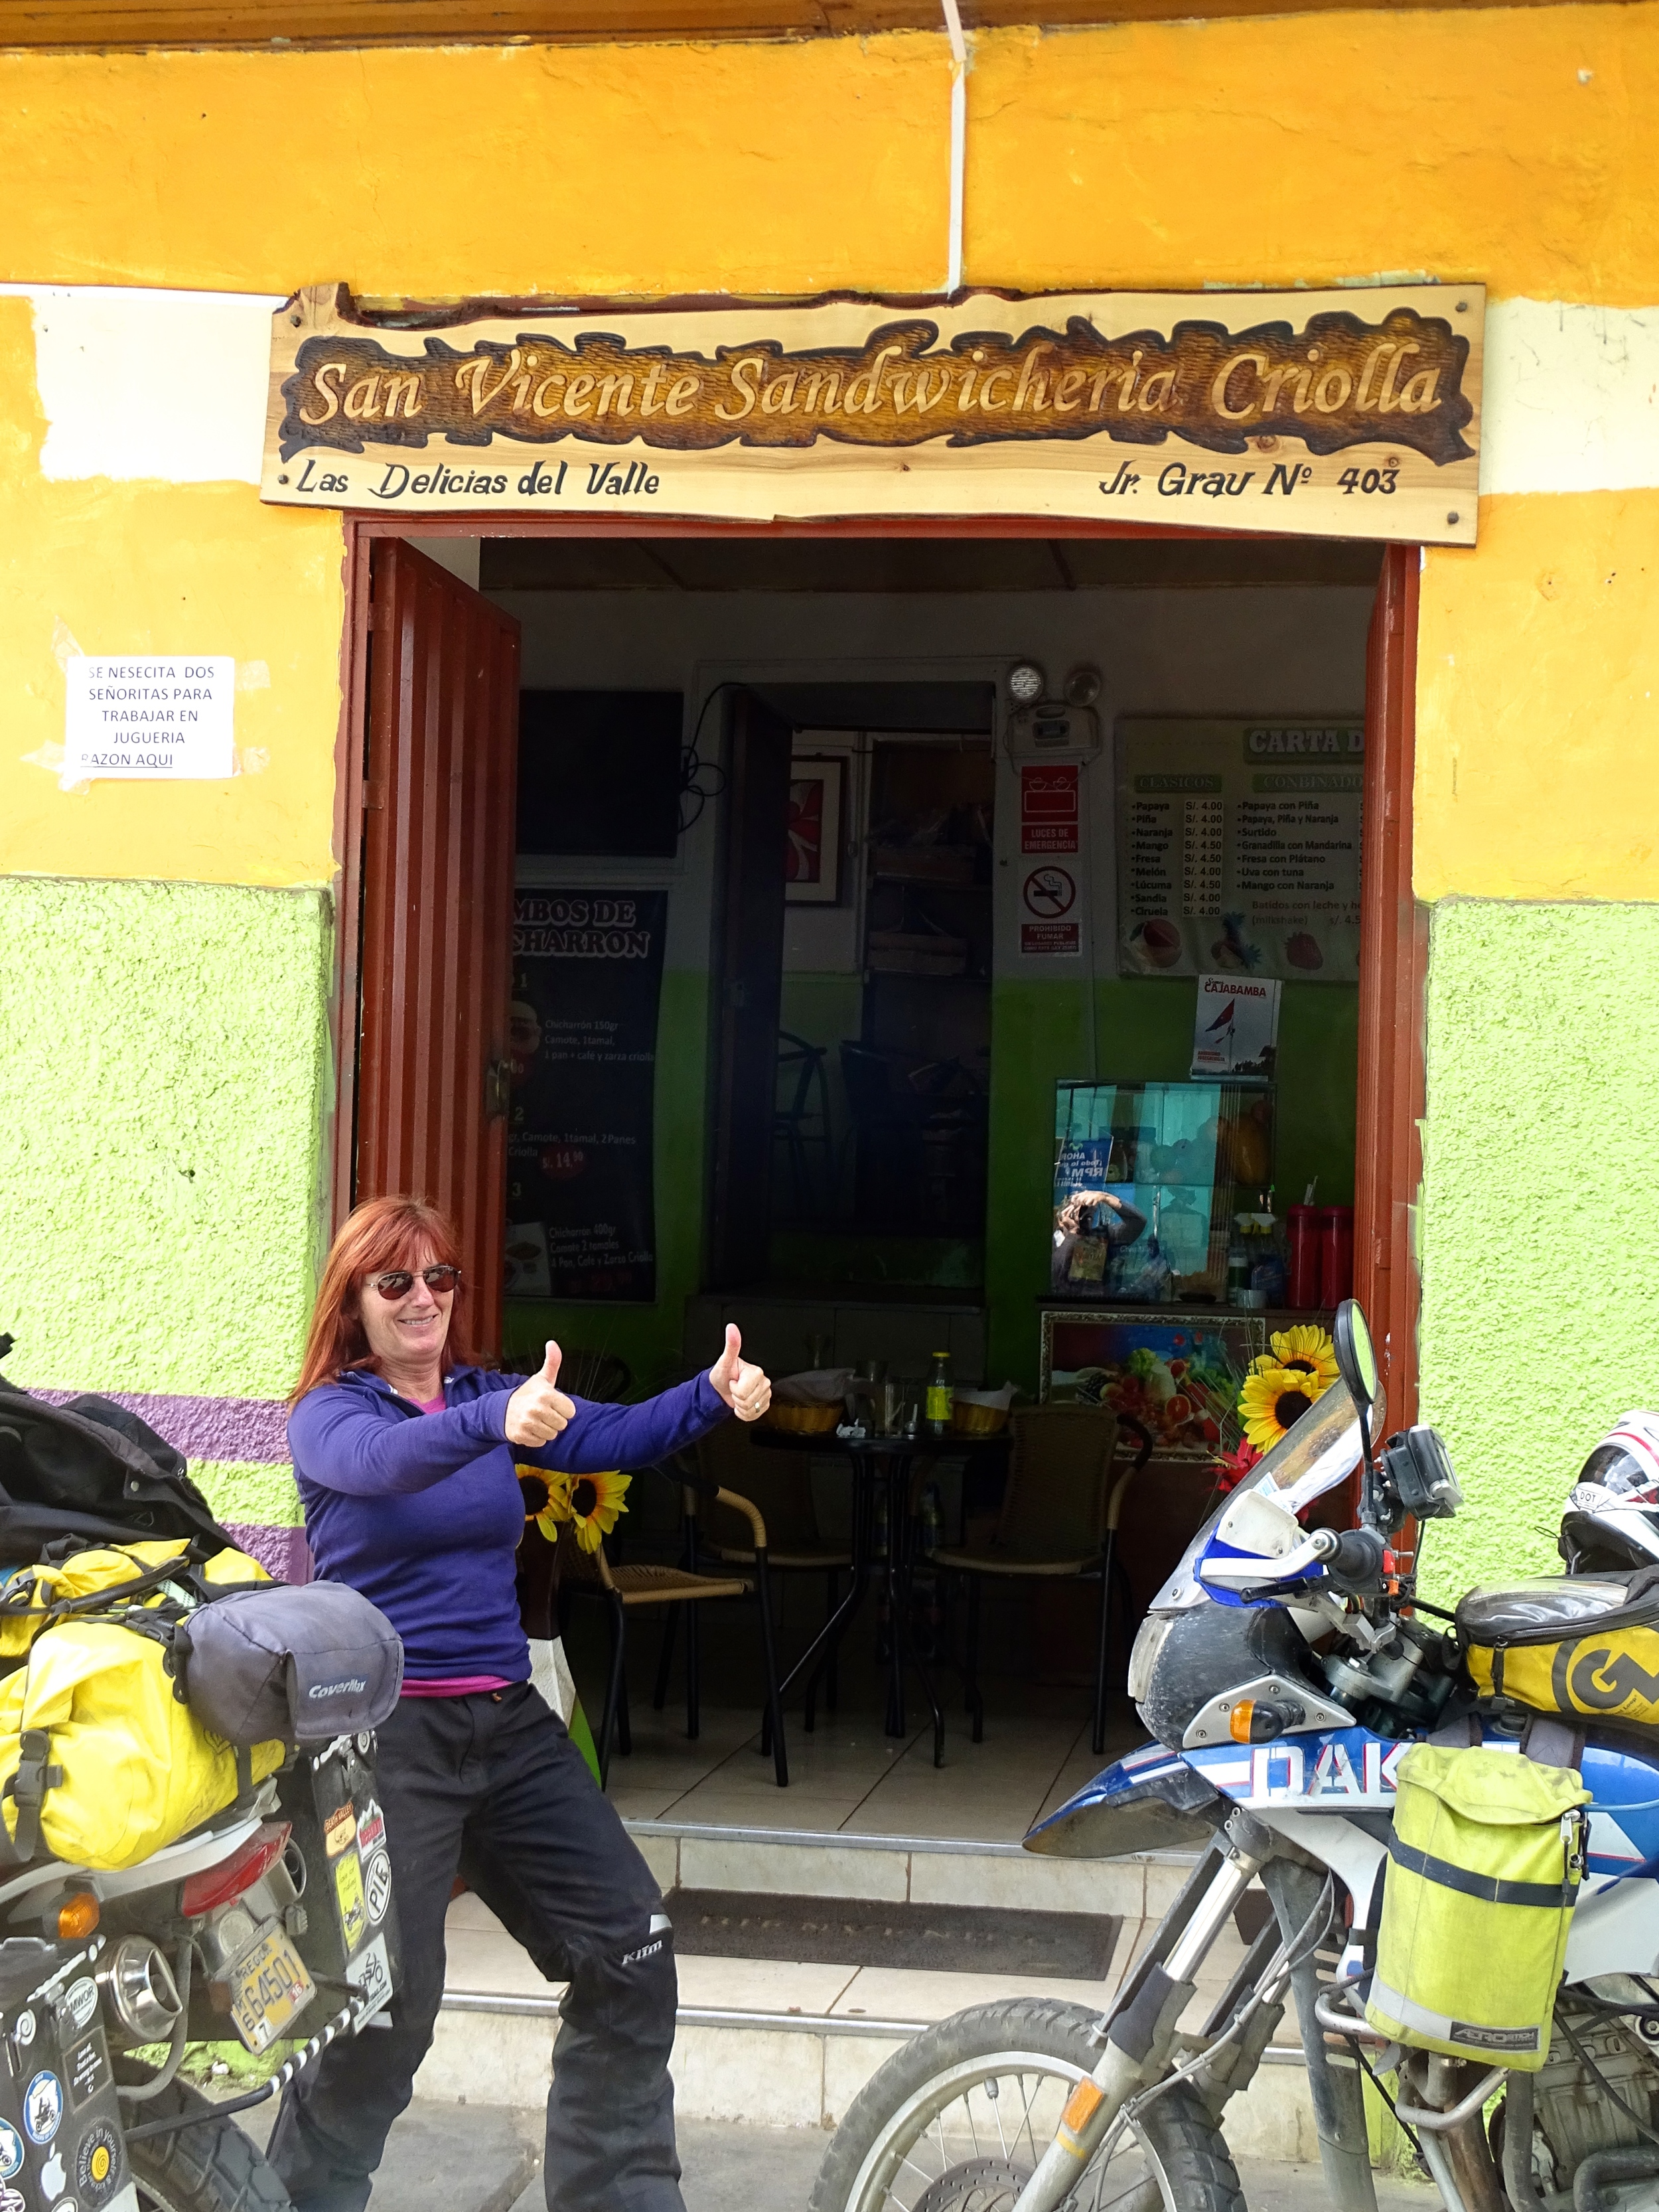 Thumbs up for this delicious cafe discovered as we rode through this tiny town.